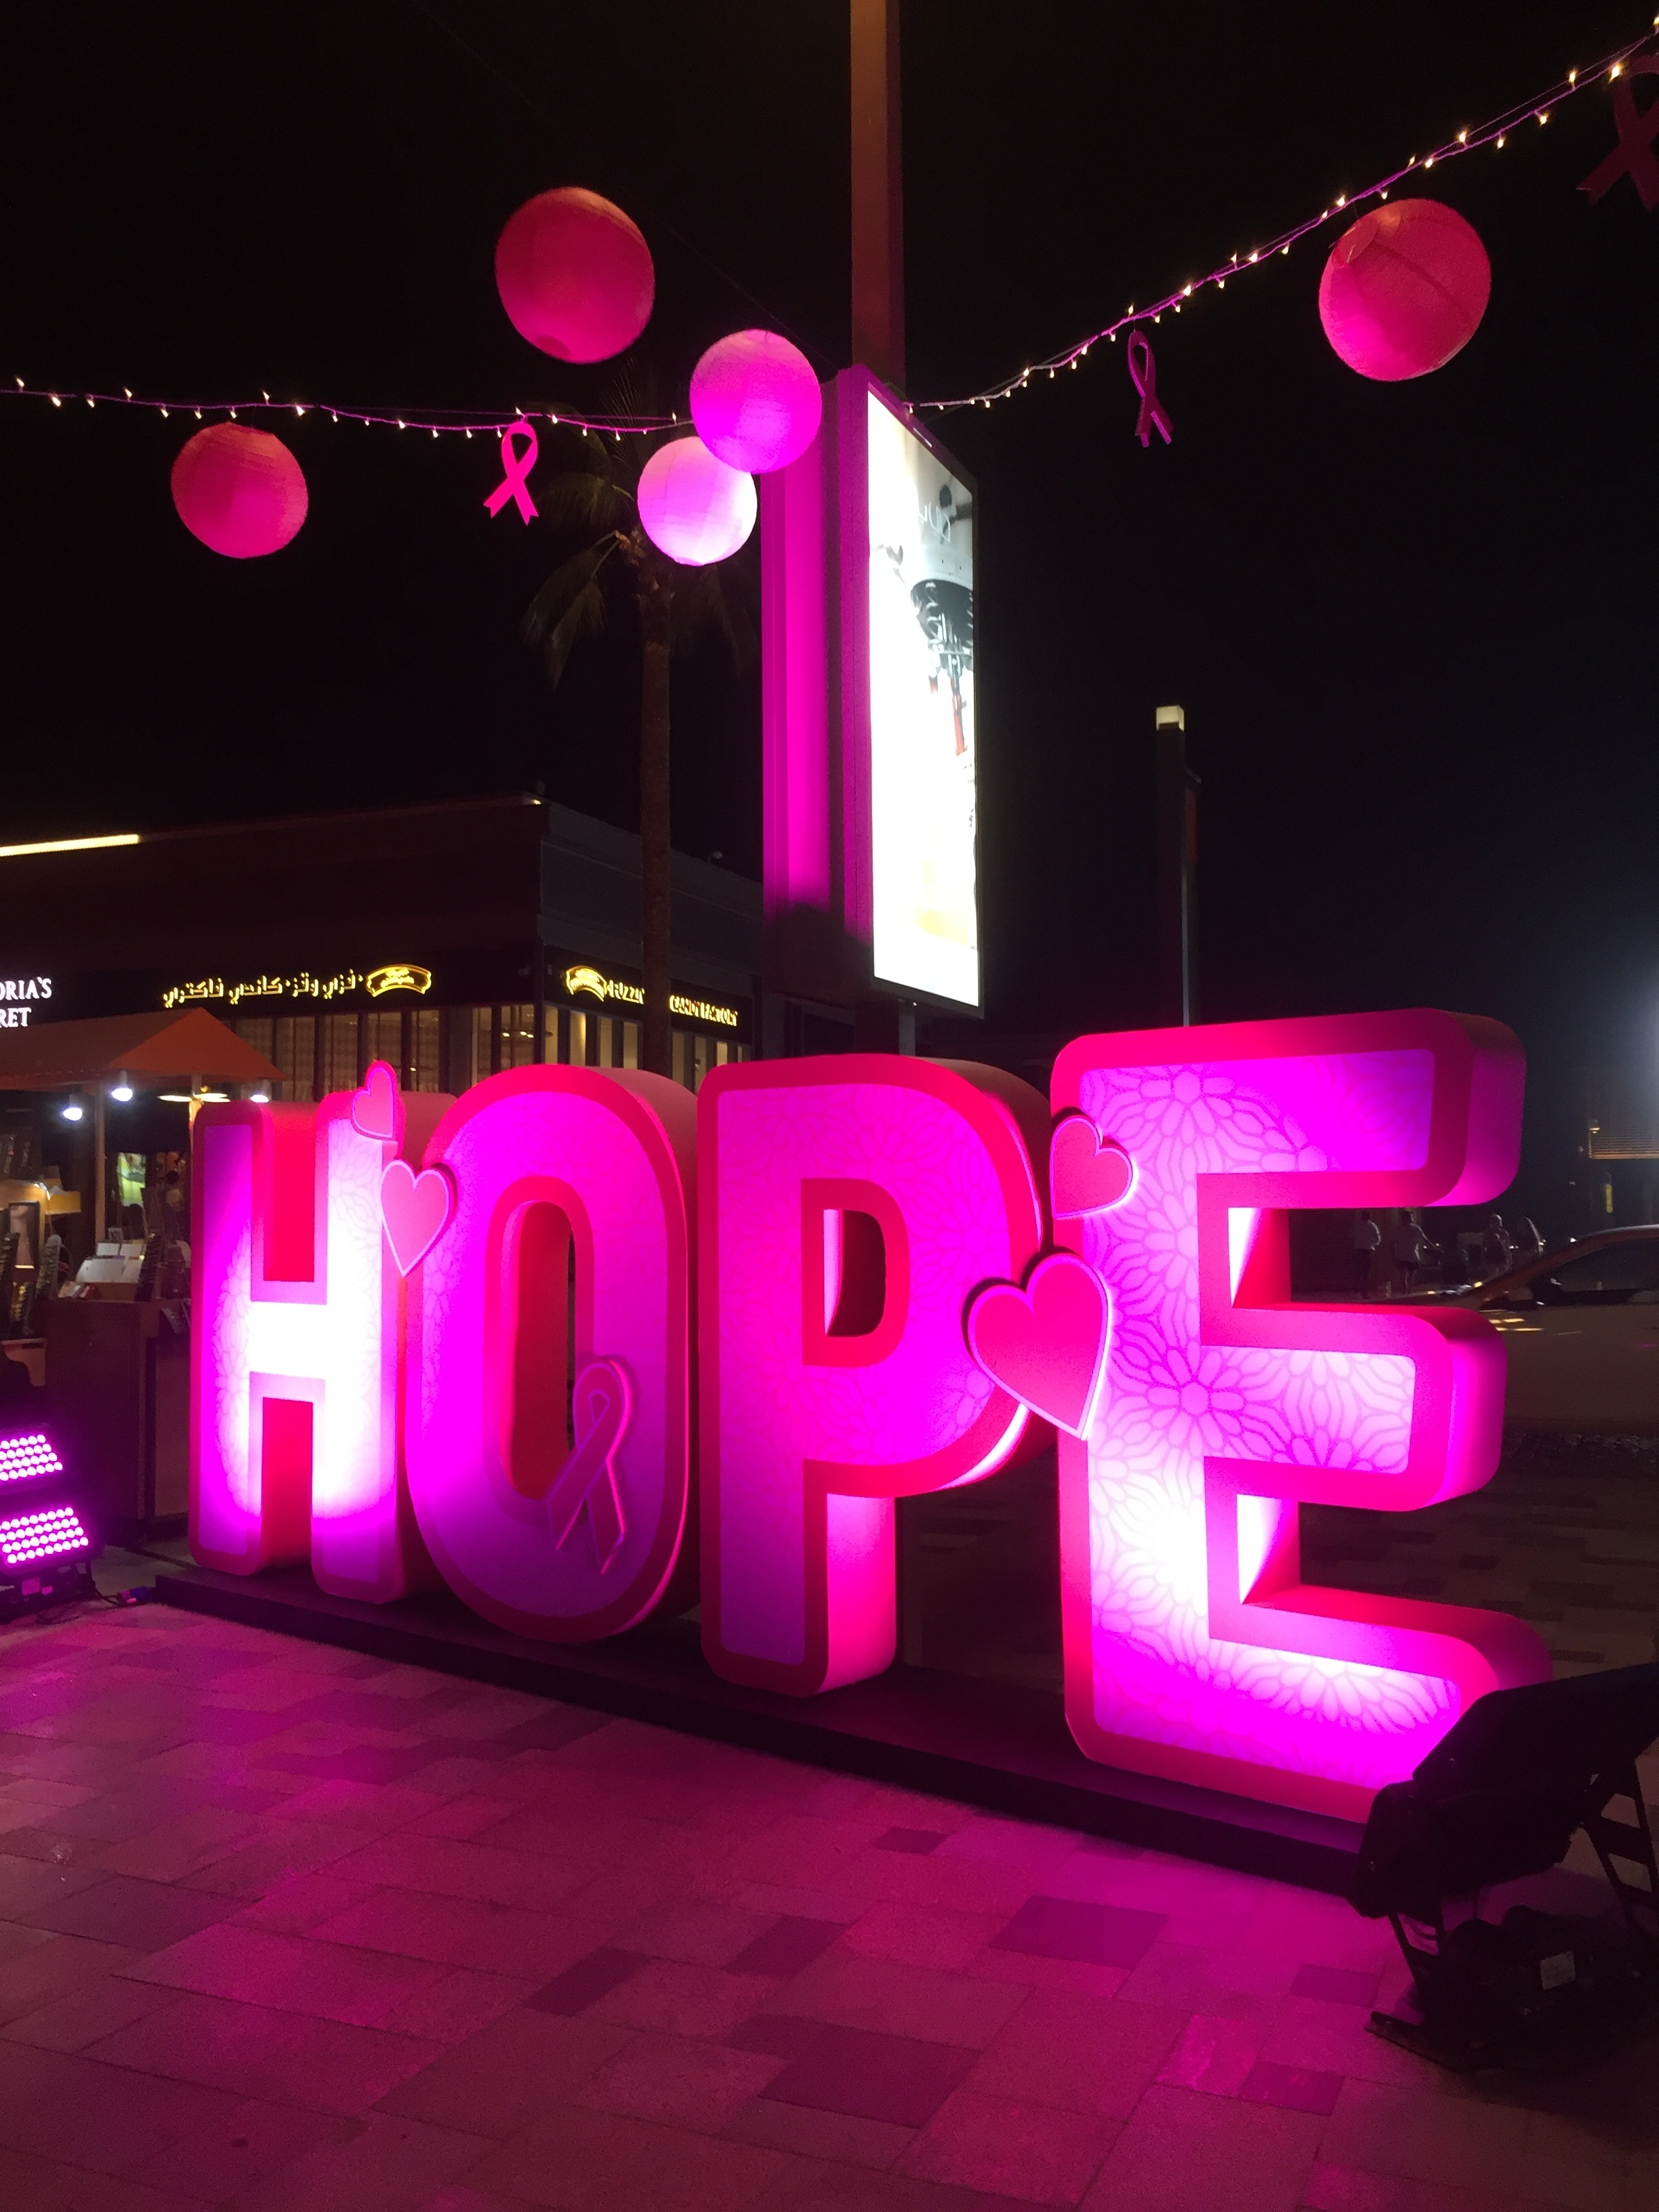 From the Pink Canvas' event on JBR